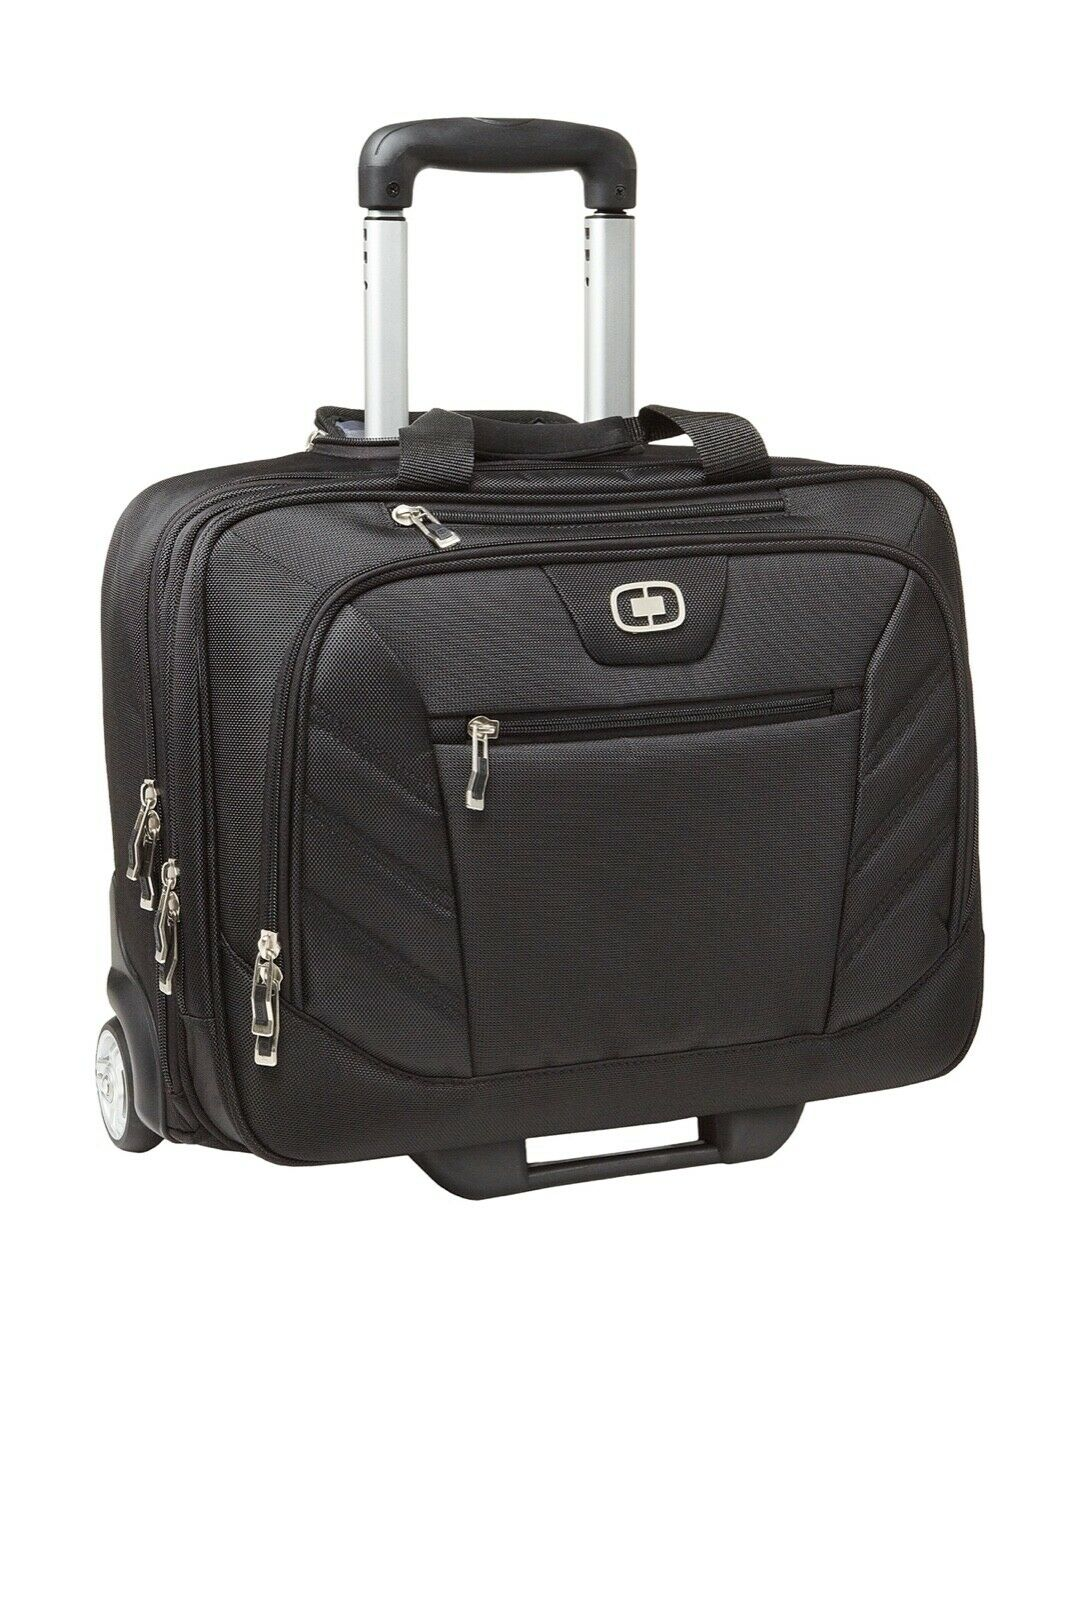 Ogio Lucin Wheeled Briefcase 417018 Carry On Travel Computer Bag